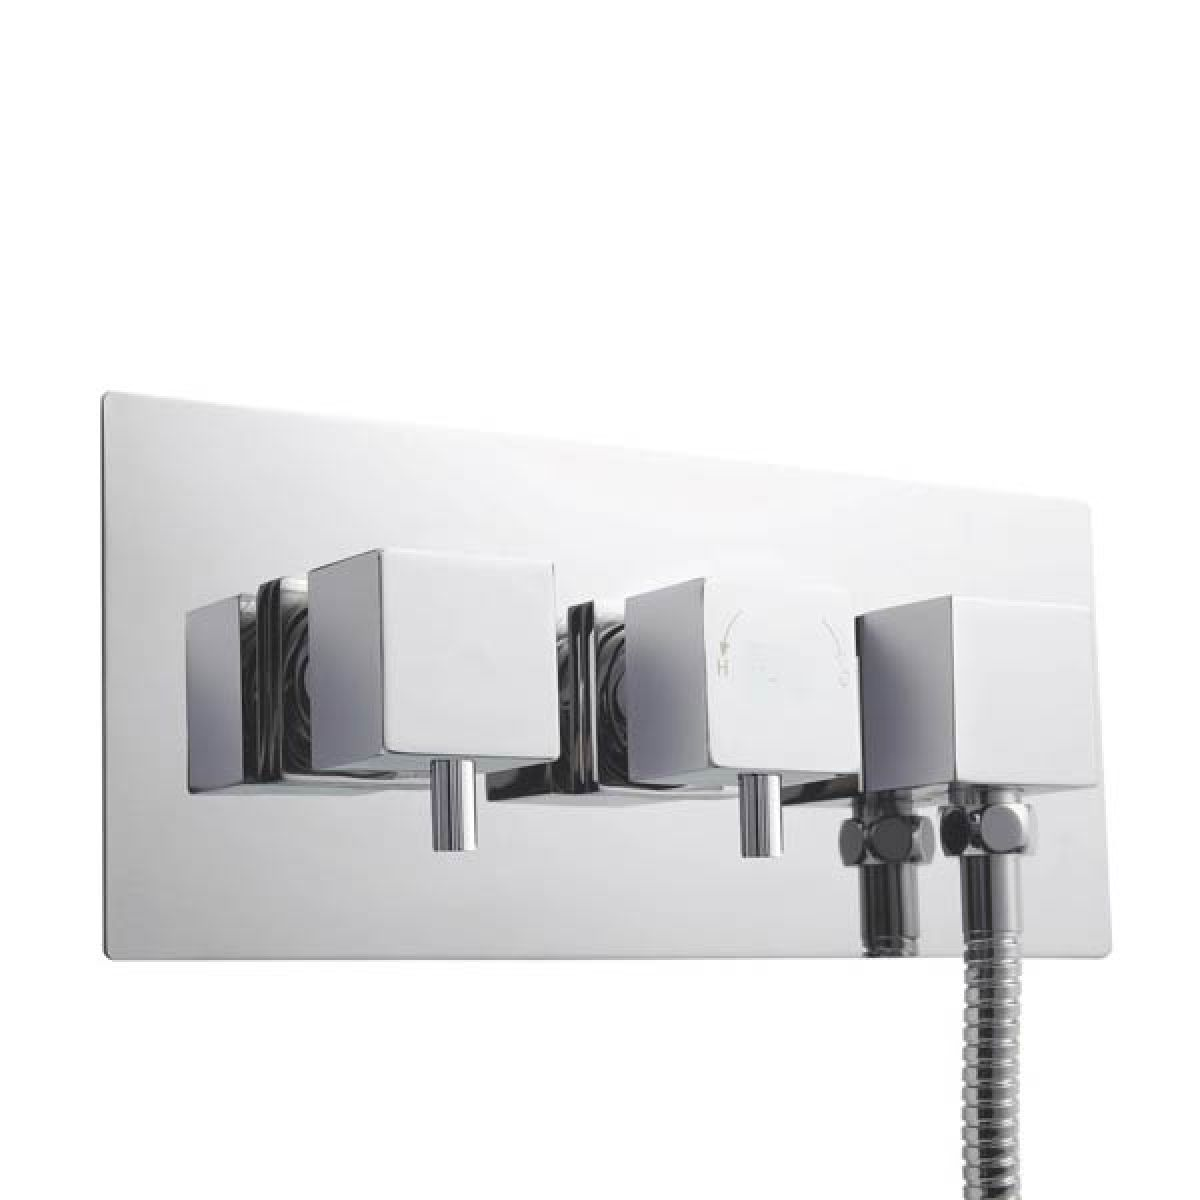 Ultra Triple Thermostatic Shower Valve With Diverter